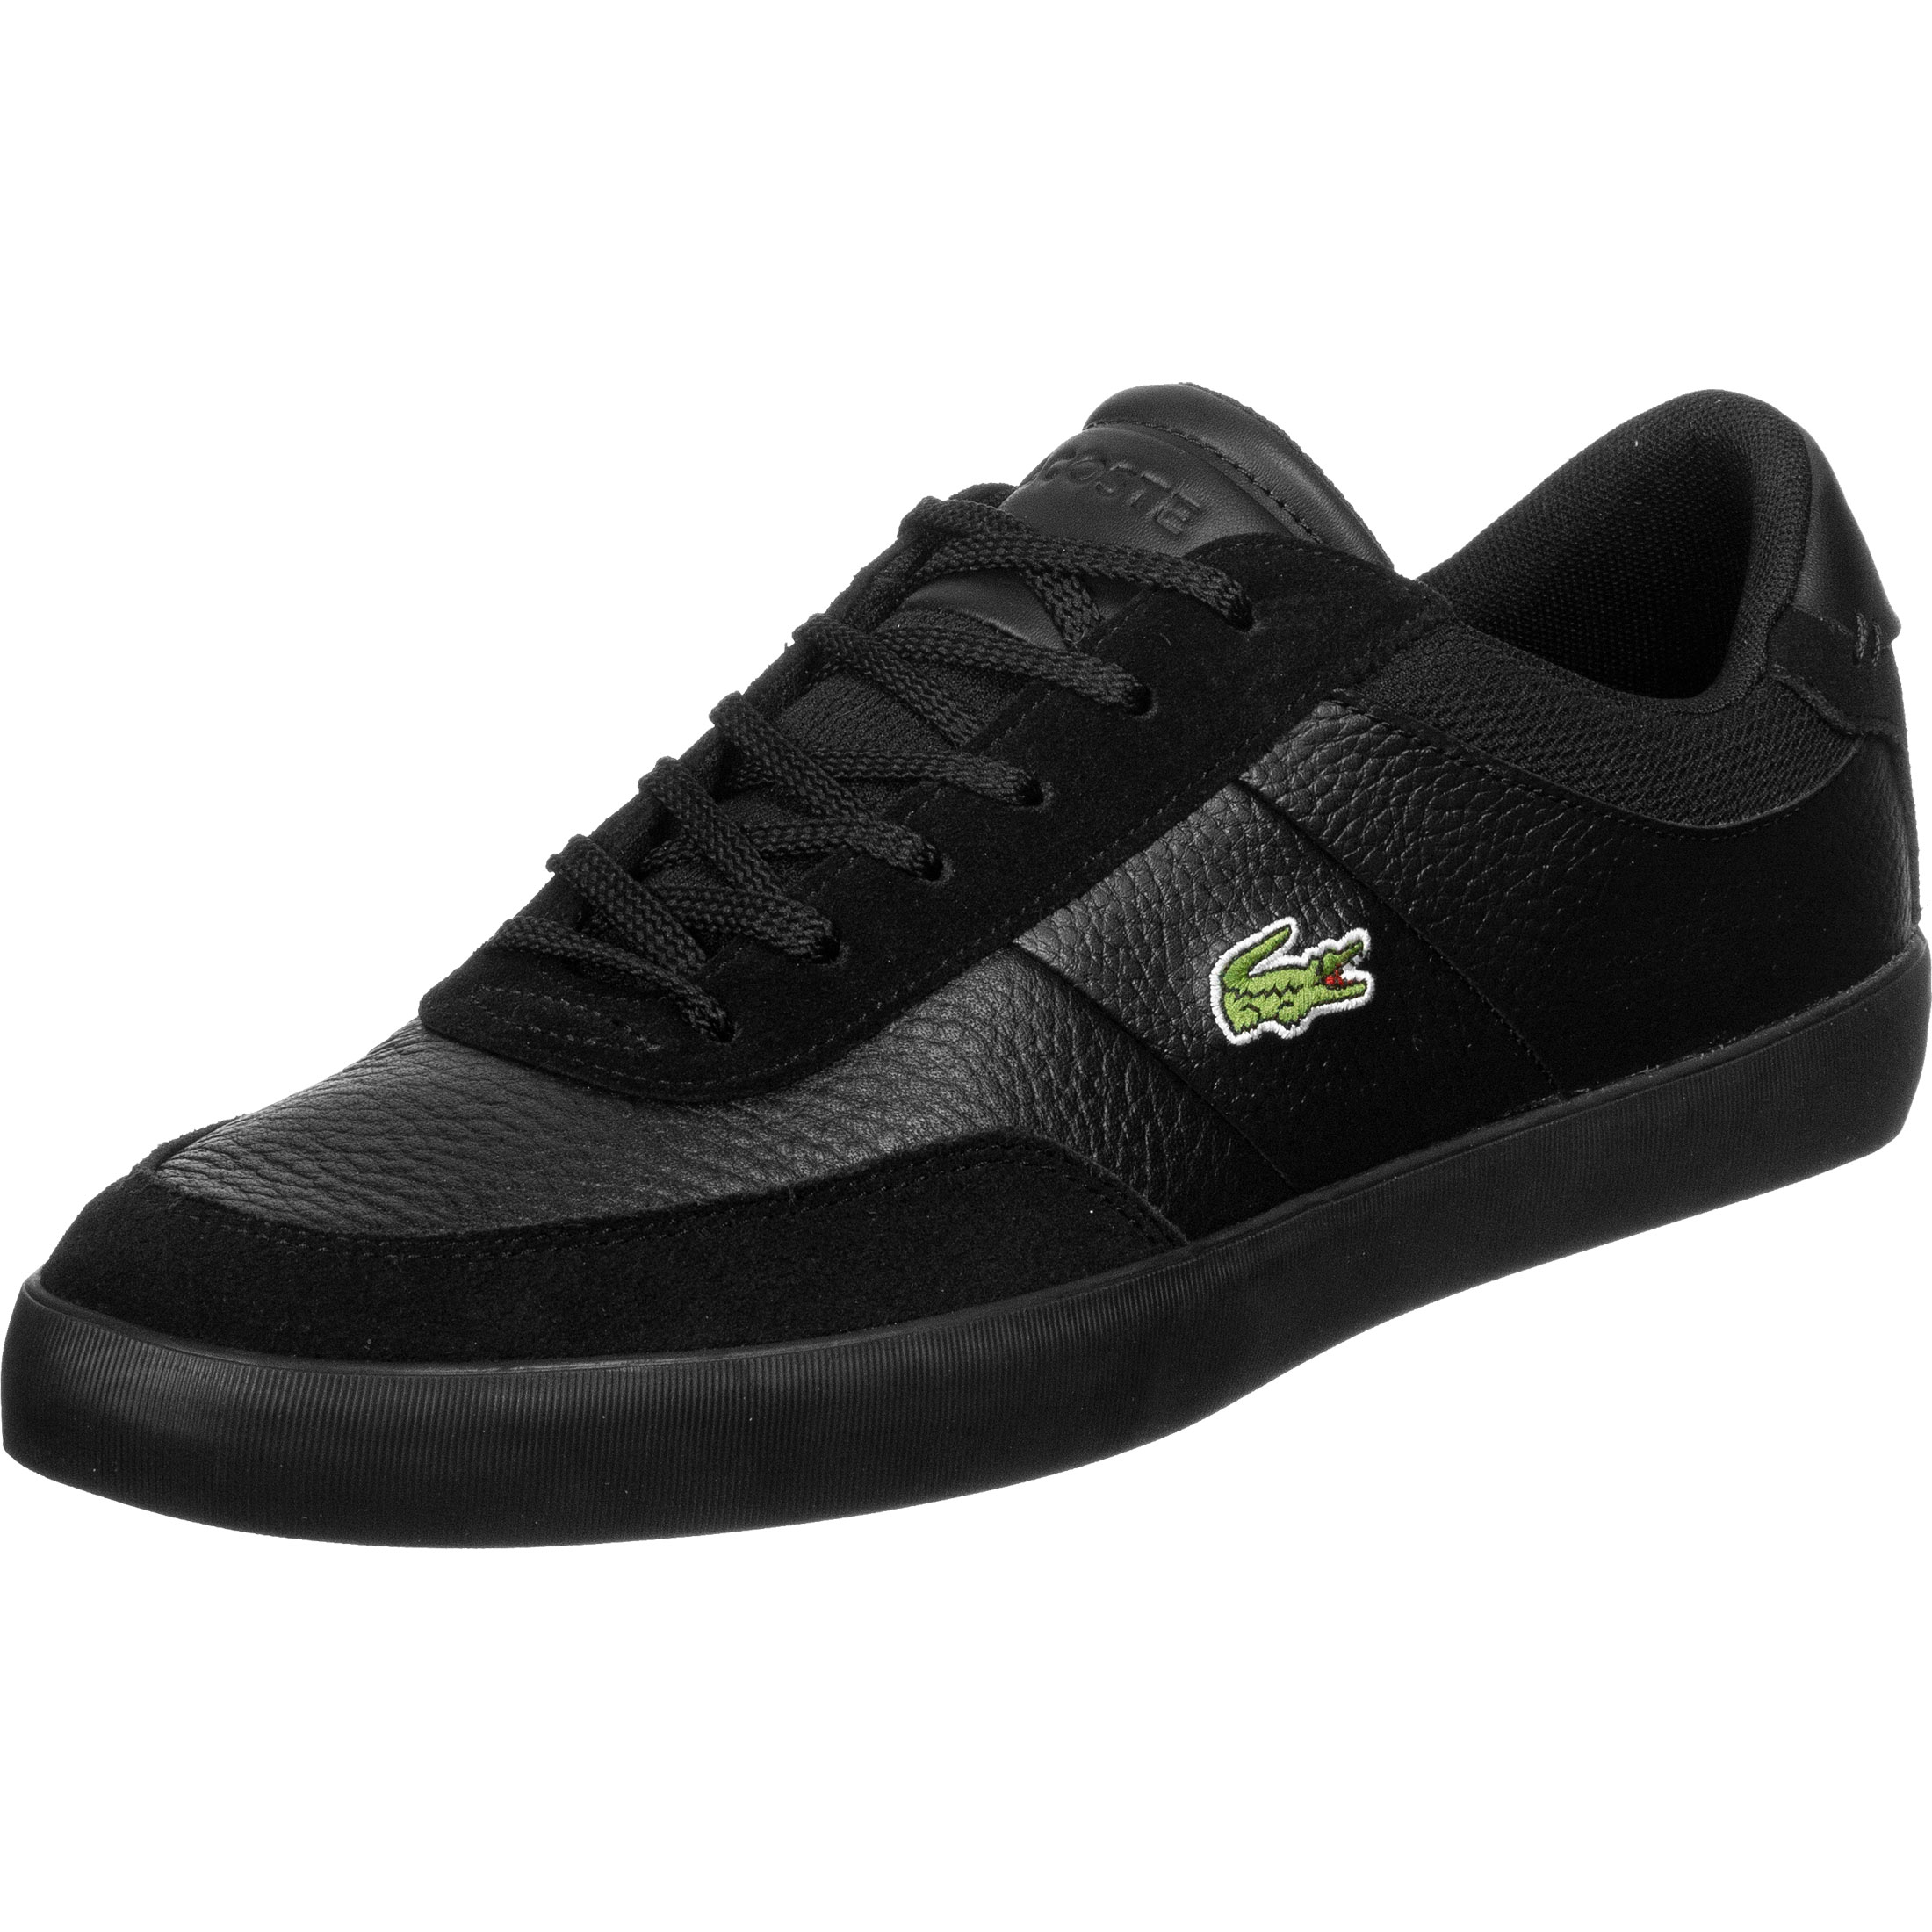 Lacoste Court Master 120 - Sneakers Low